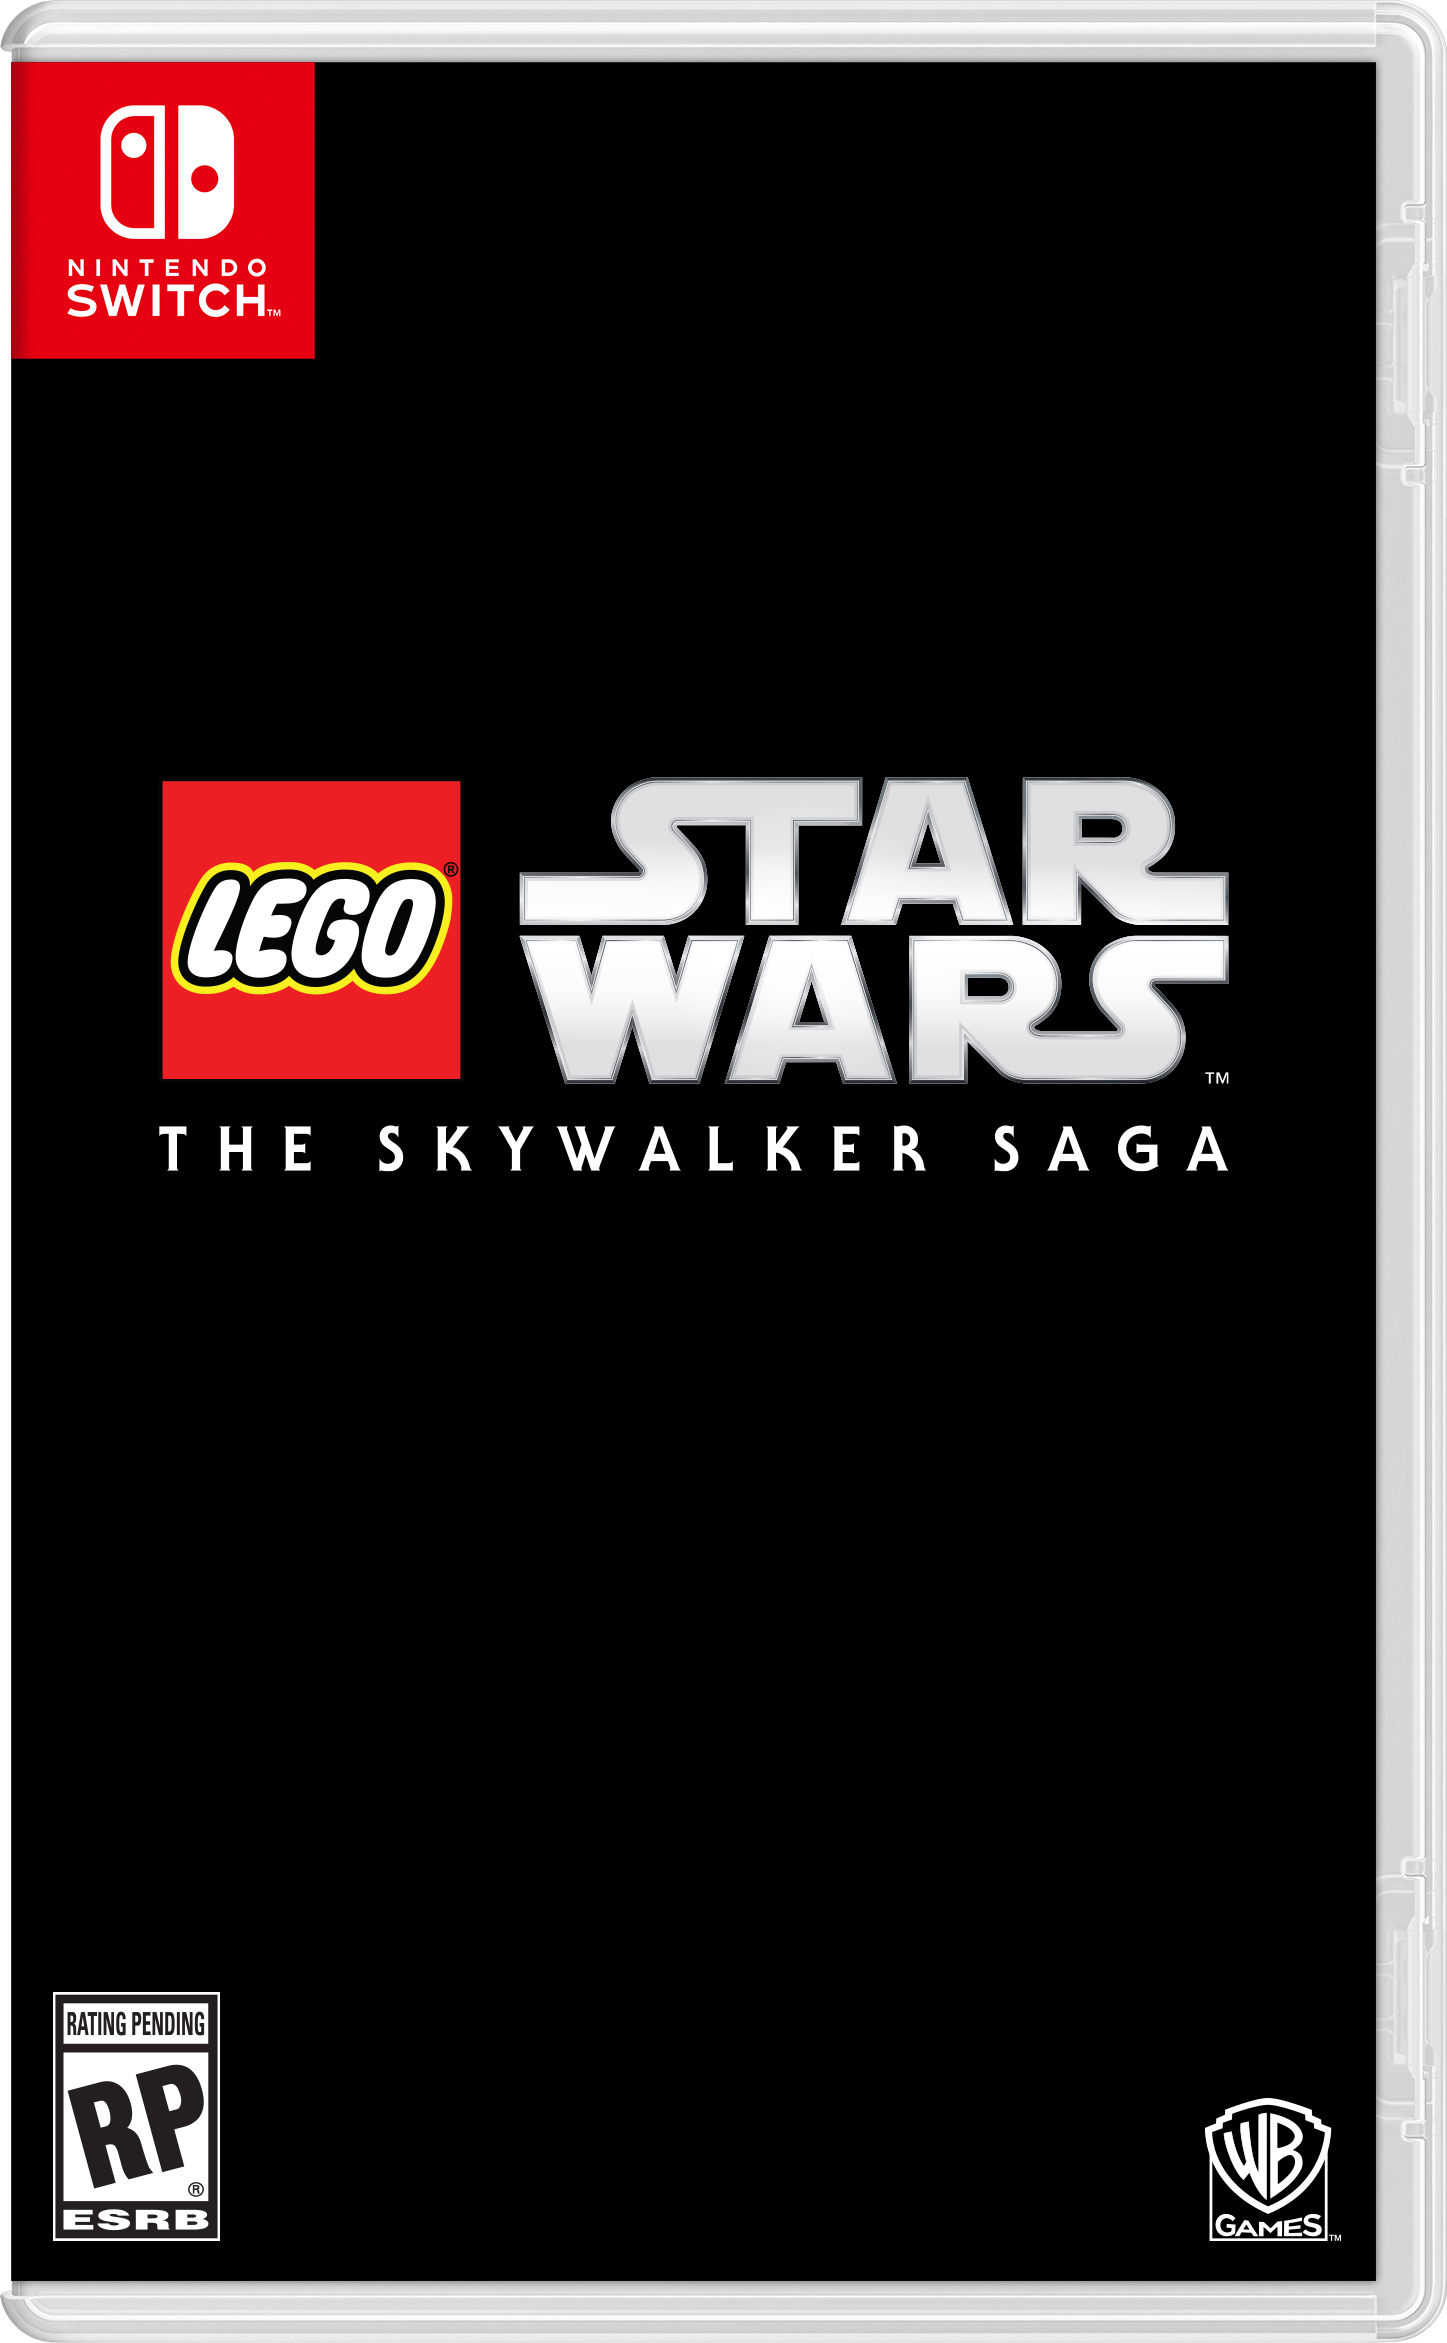 Lego Star Wars: The Skywalker Saga!, Warner, Nintendo Switch, 883929681600 by Warner Bros